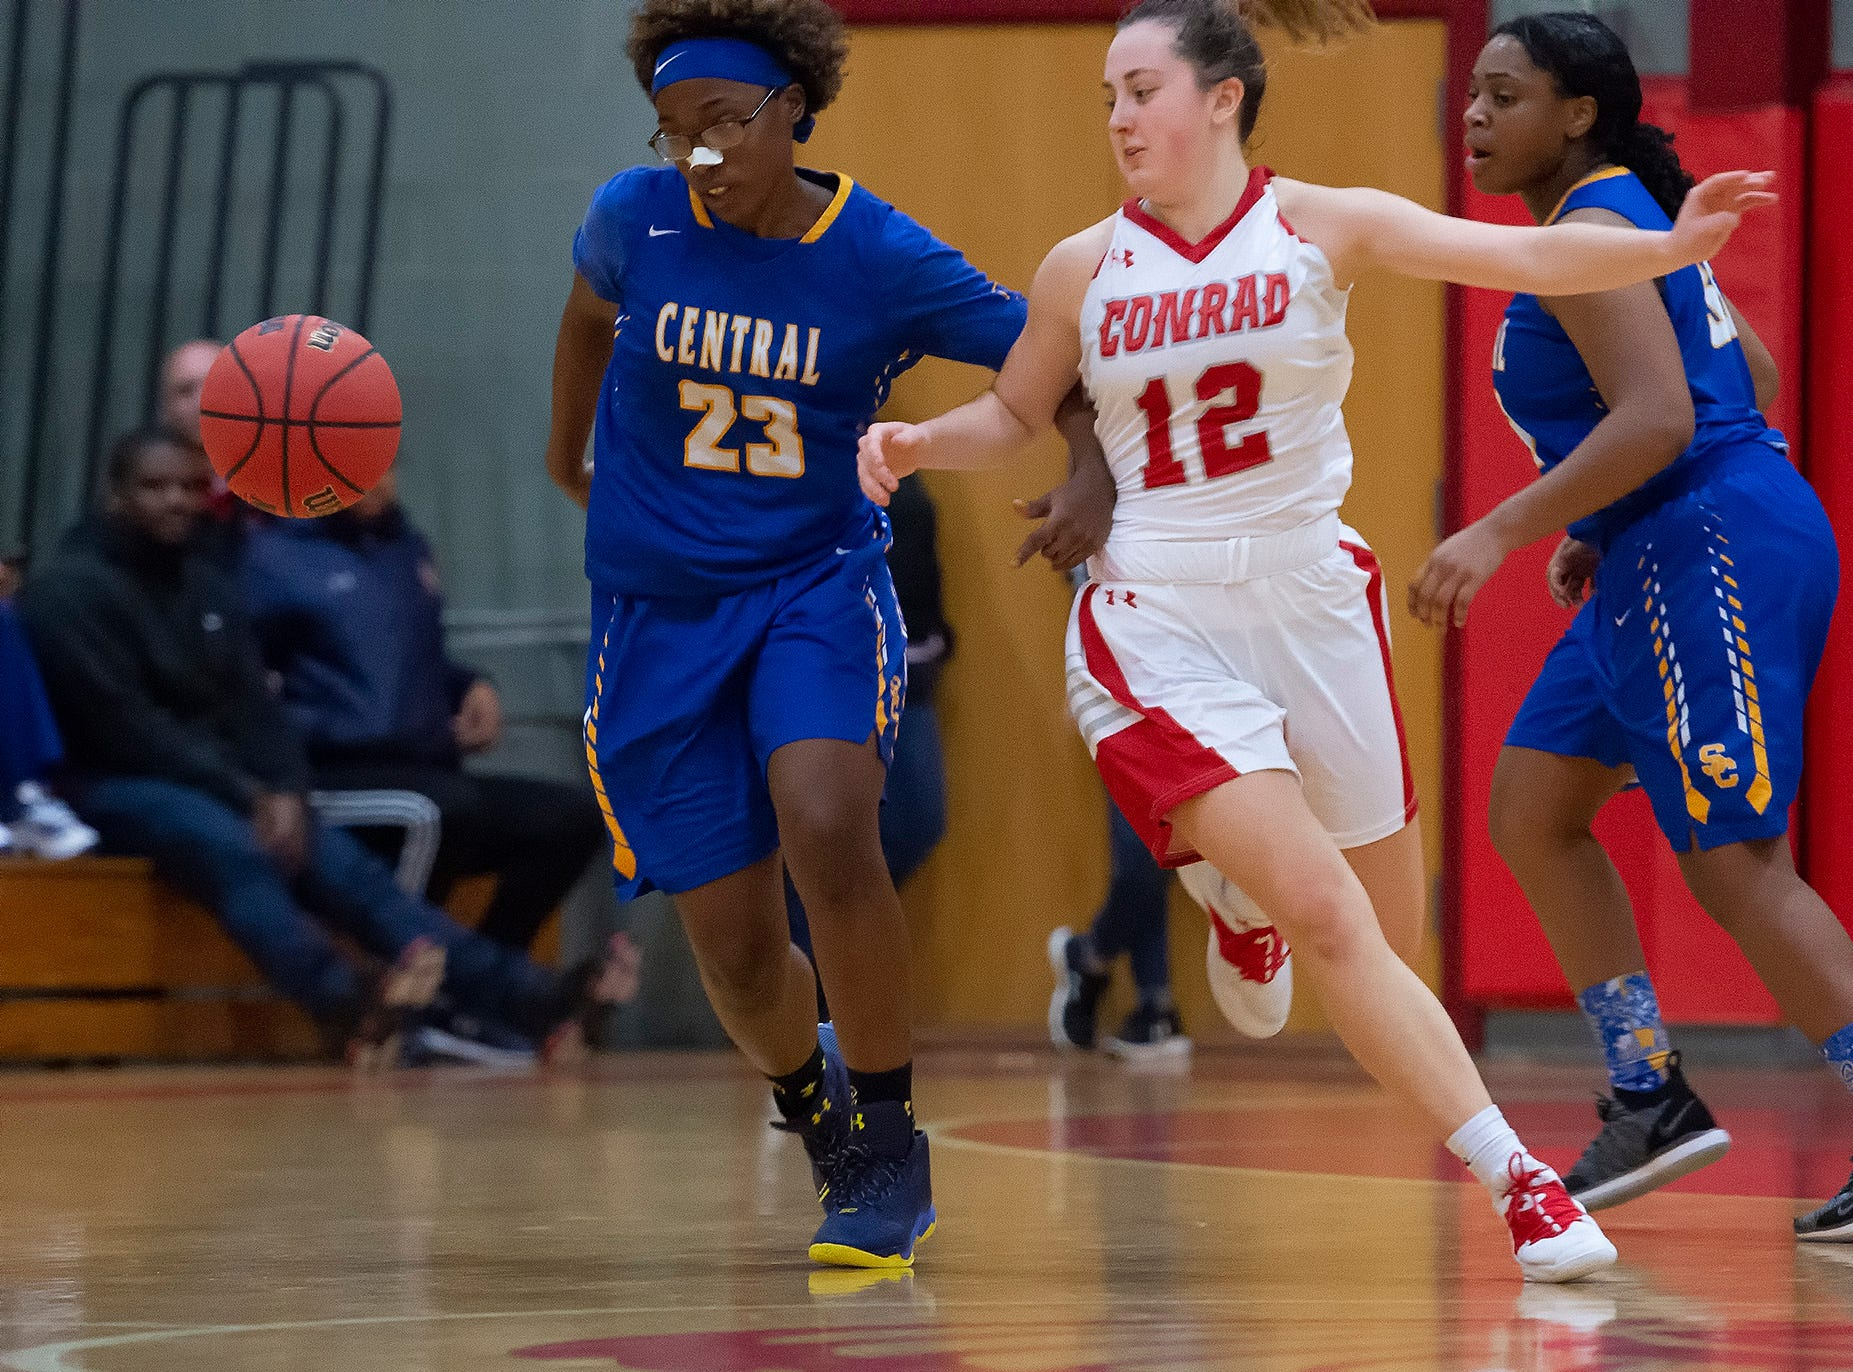 Conrad's Alyssa Faville (12) works to steal the ball from Sussex Central's Raeonna Stratton (23) in their game at Conrad Schools of Science.